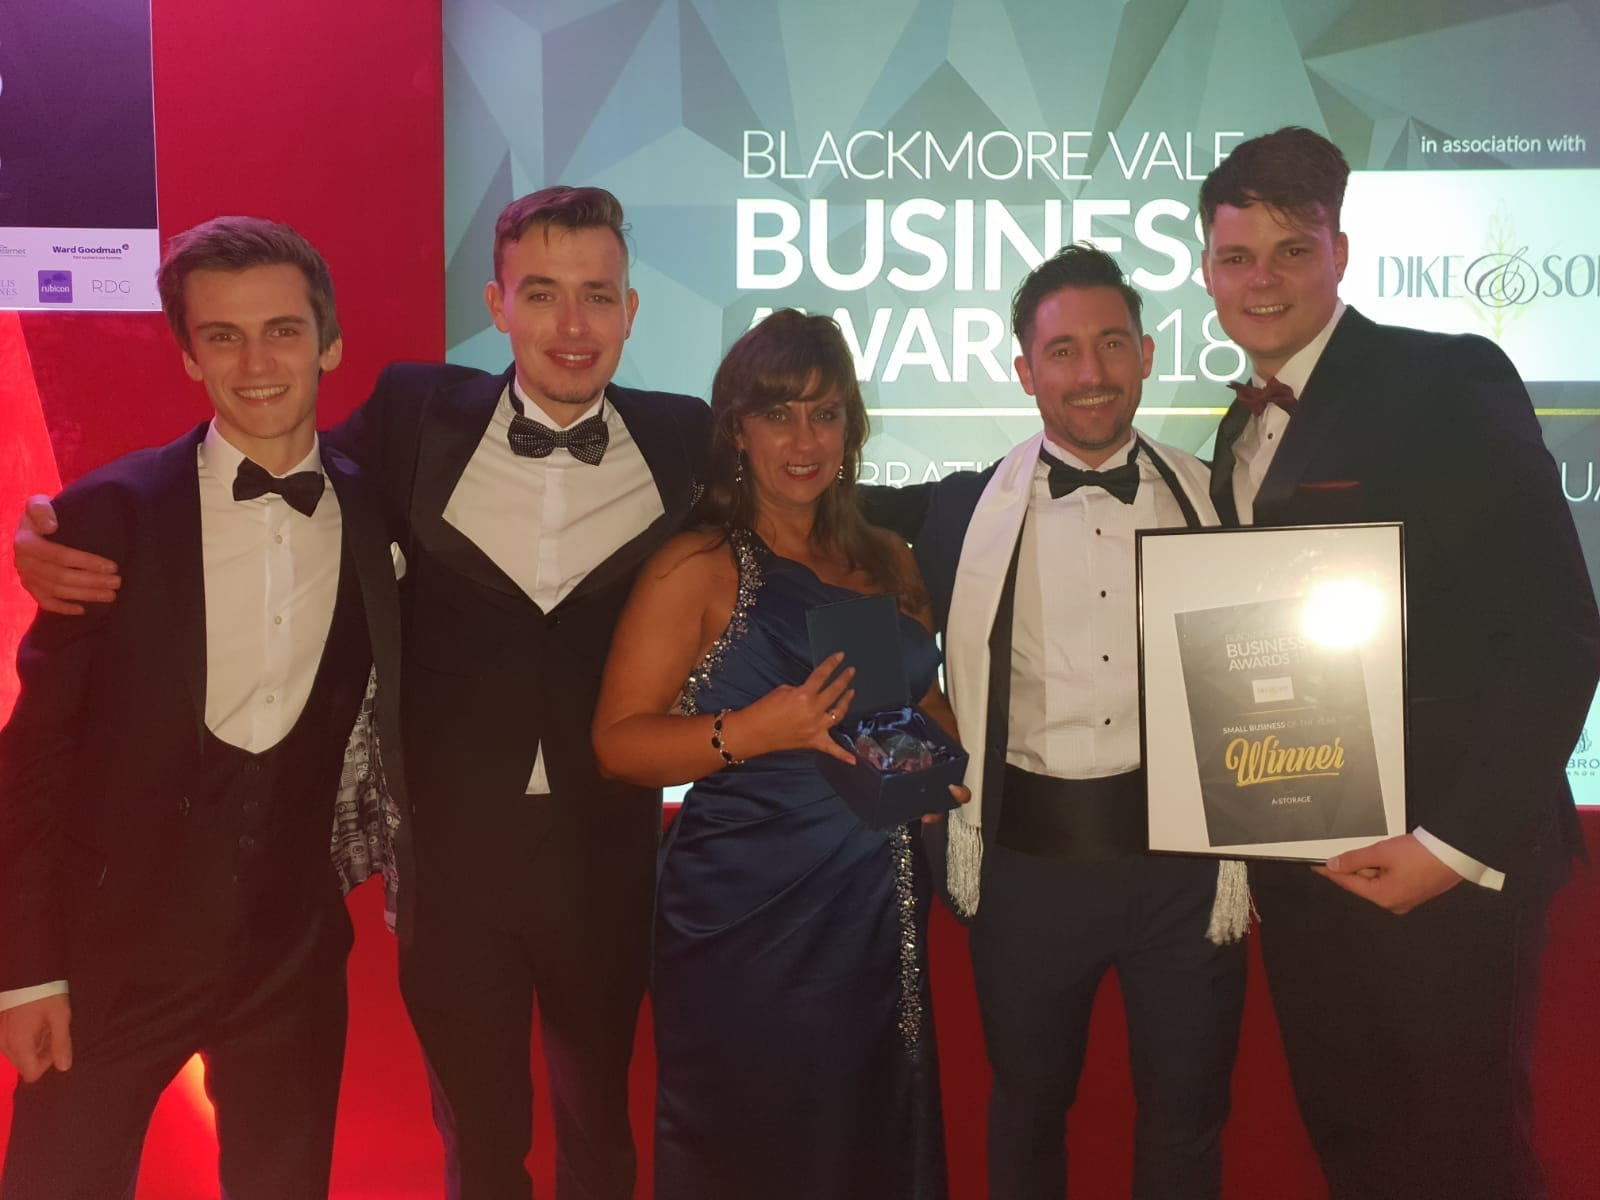 Blackmore Vale Business Awards Winners